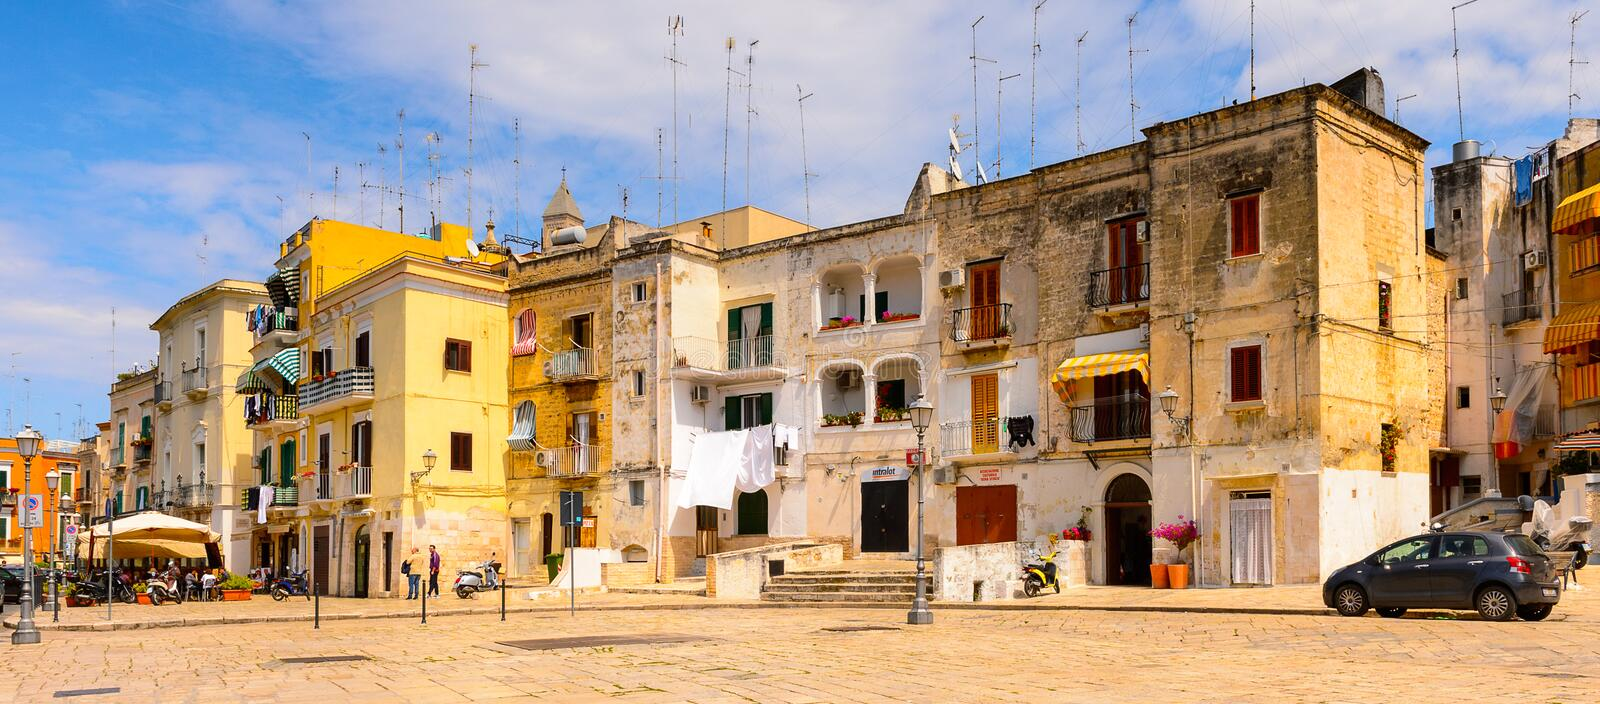 Architecture of the Old Town of Bari, Italy royalty free stock photos